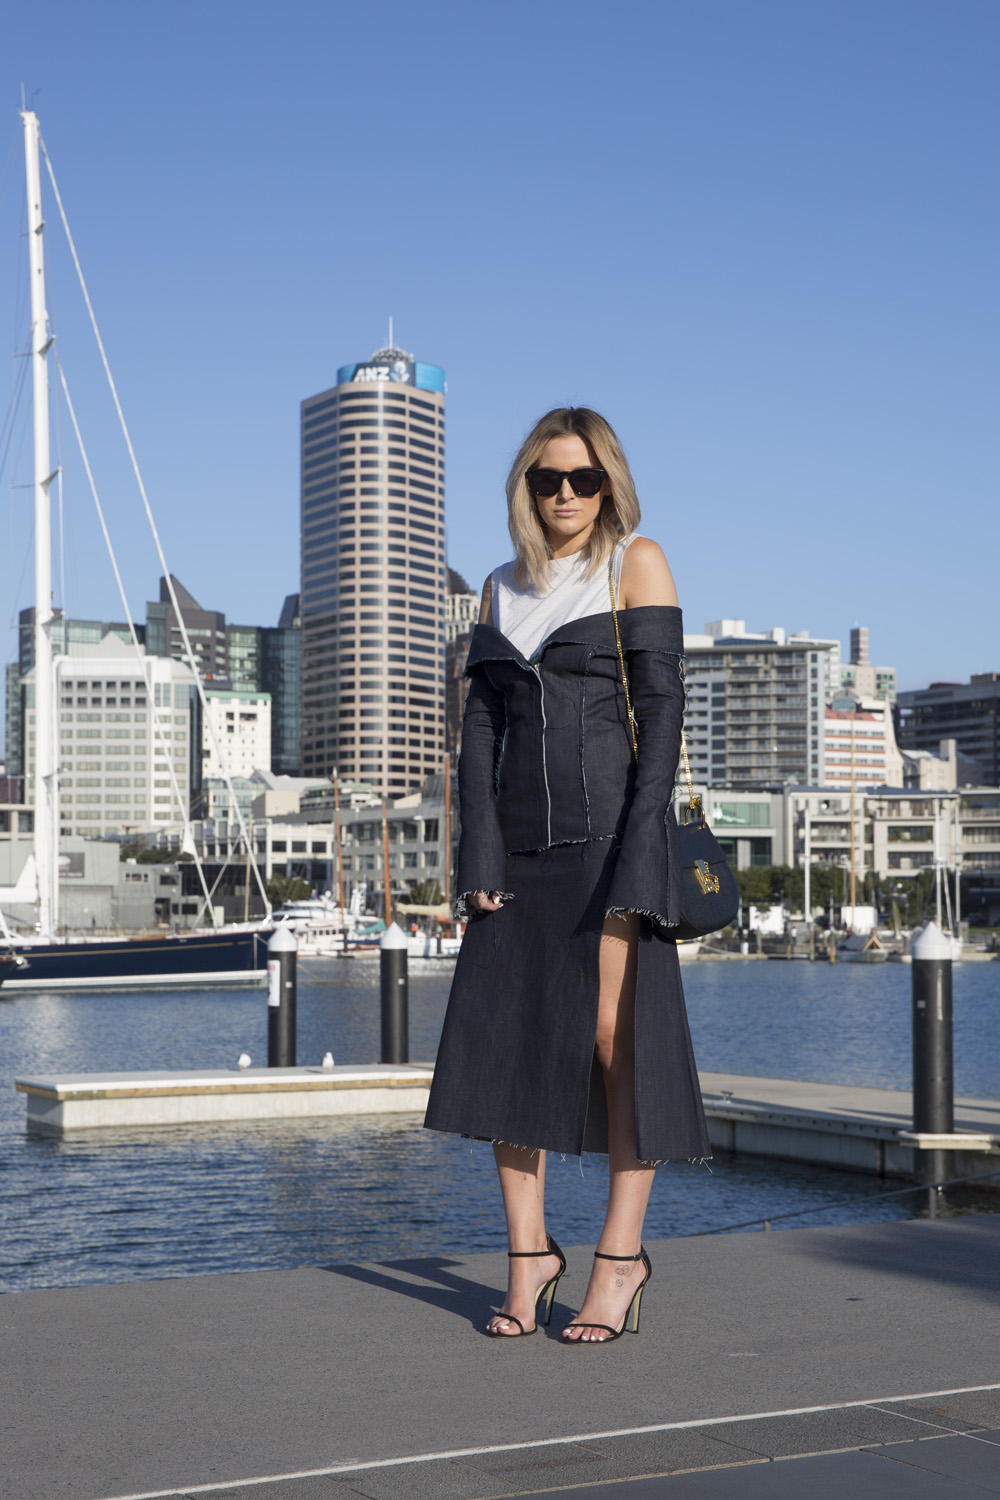 FOUREYES | New Zealand Street Style Fashion Blog